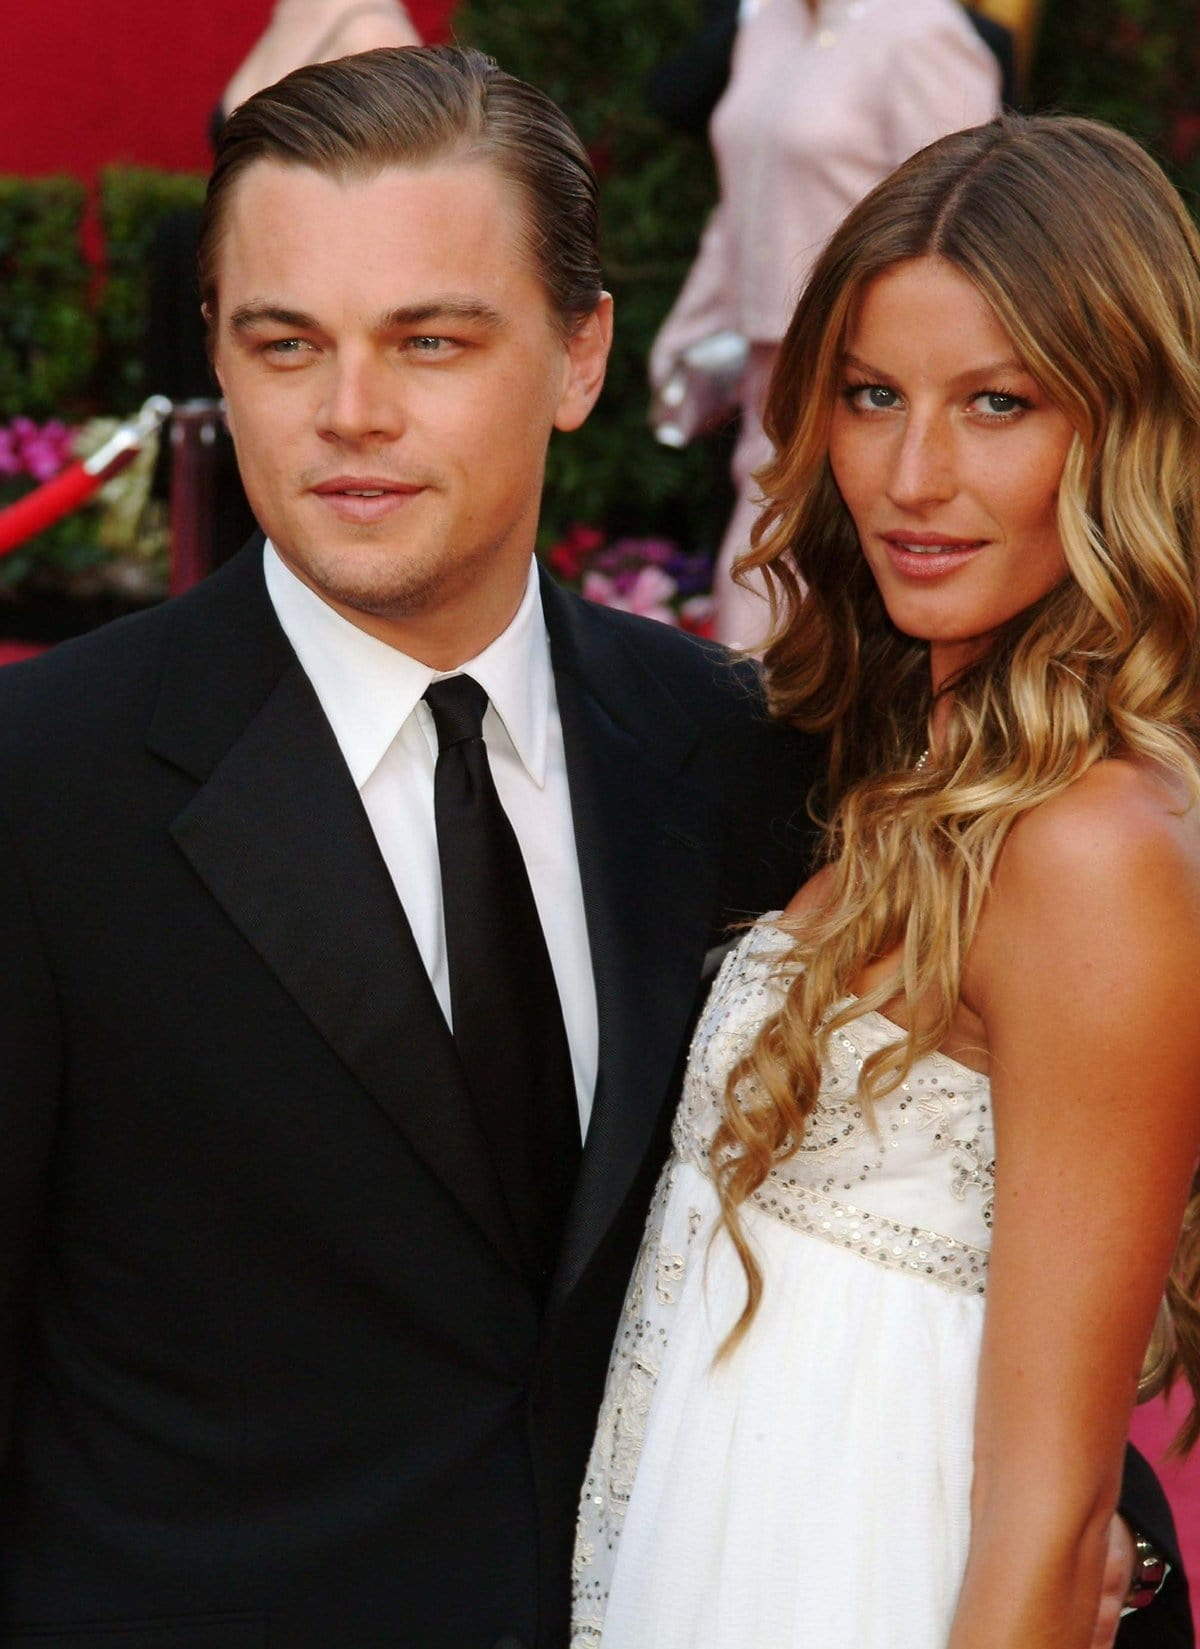 Gisele Bündchen and Leonardo DiCaprio dated on and off for six years from 1999 through 2005